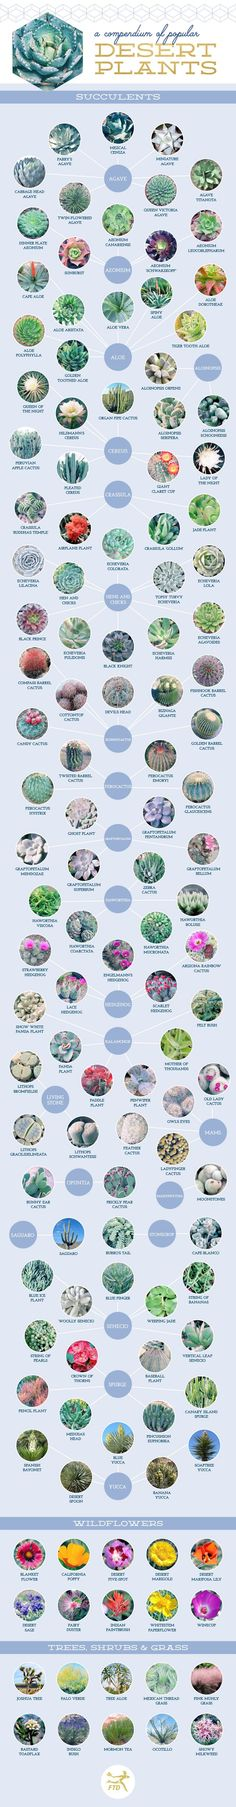 Don't know the name of your succulent or cactus plant? This great Compendium of 127 Stunning Desert Plants and Succulents may help. Image shared with permission of ftd.com